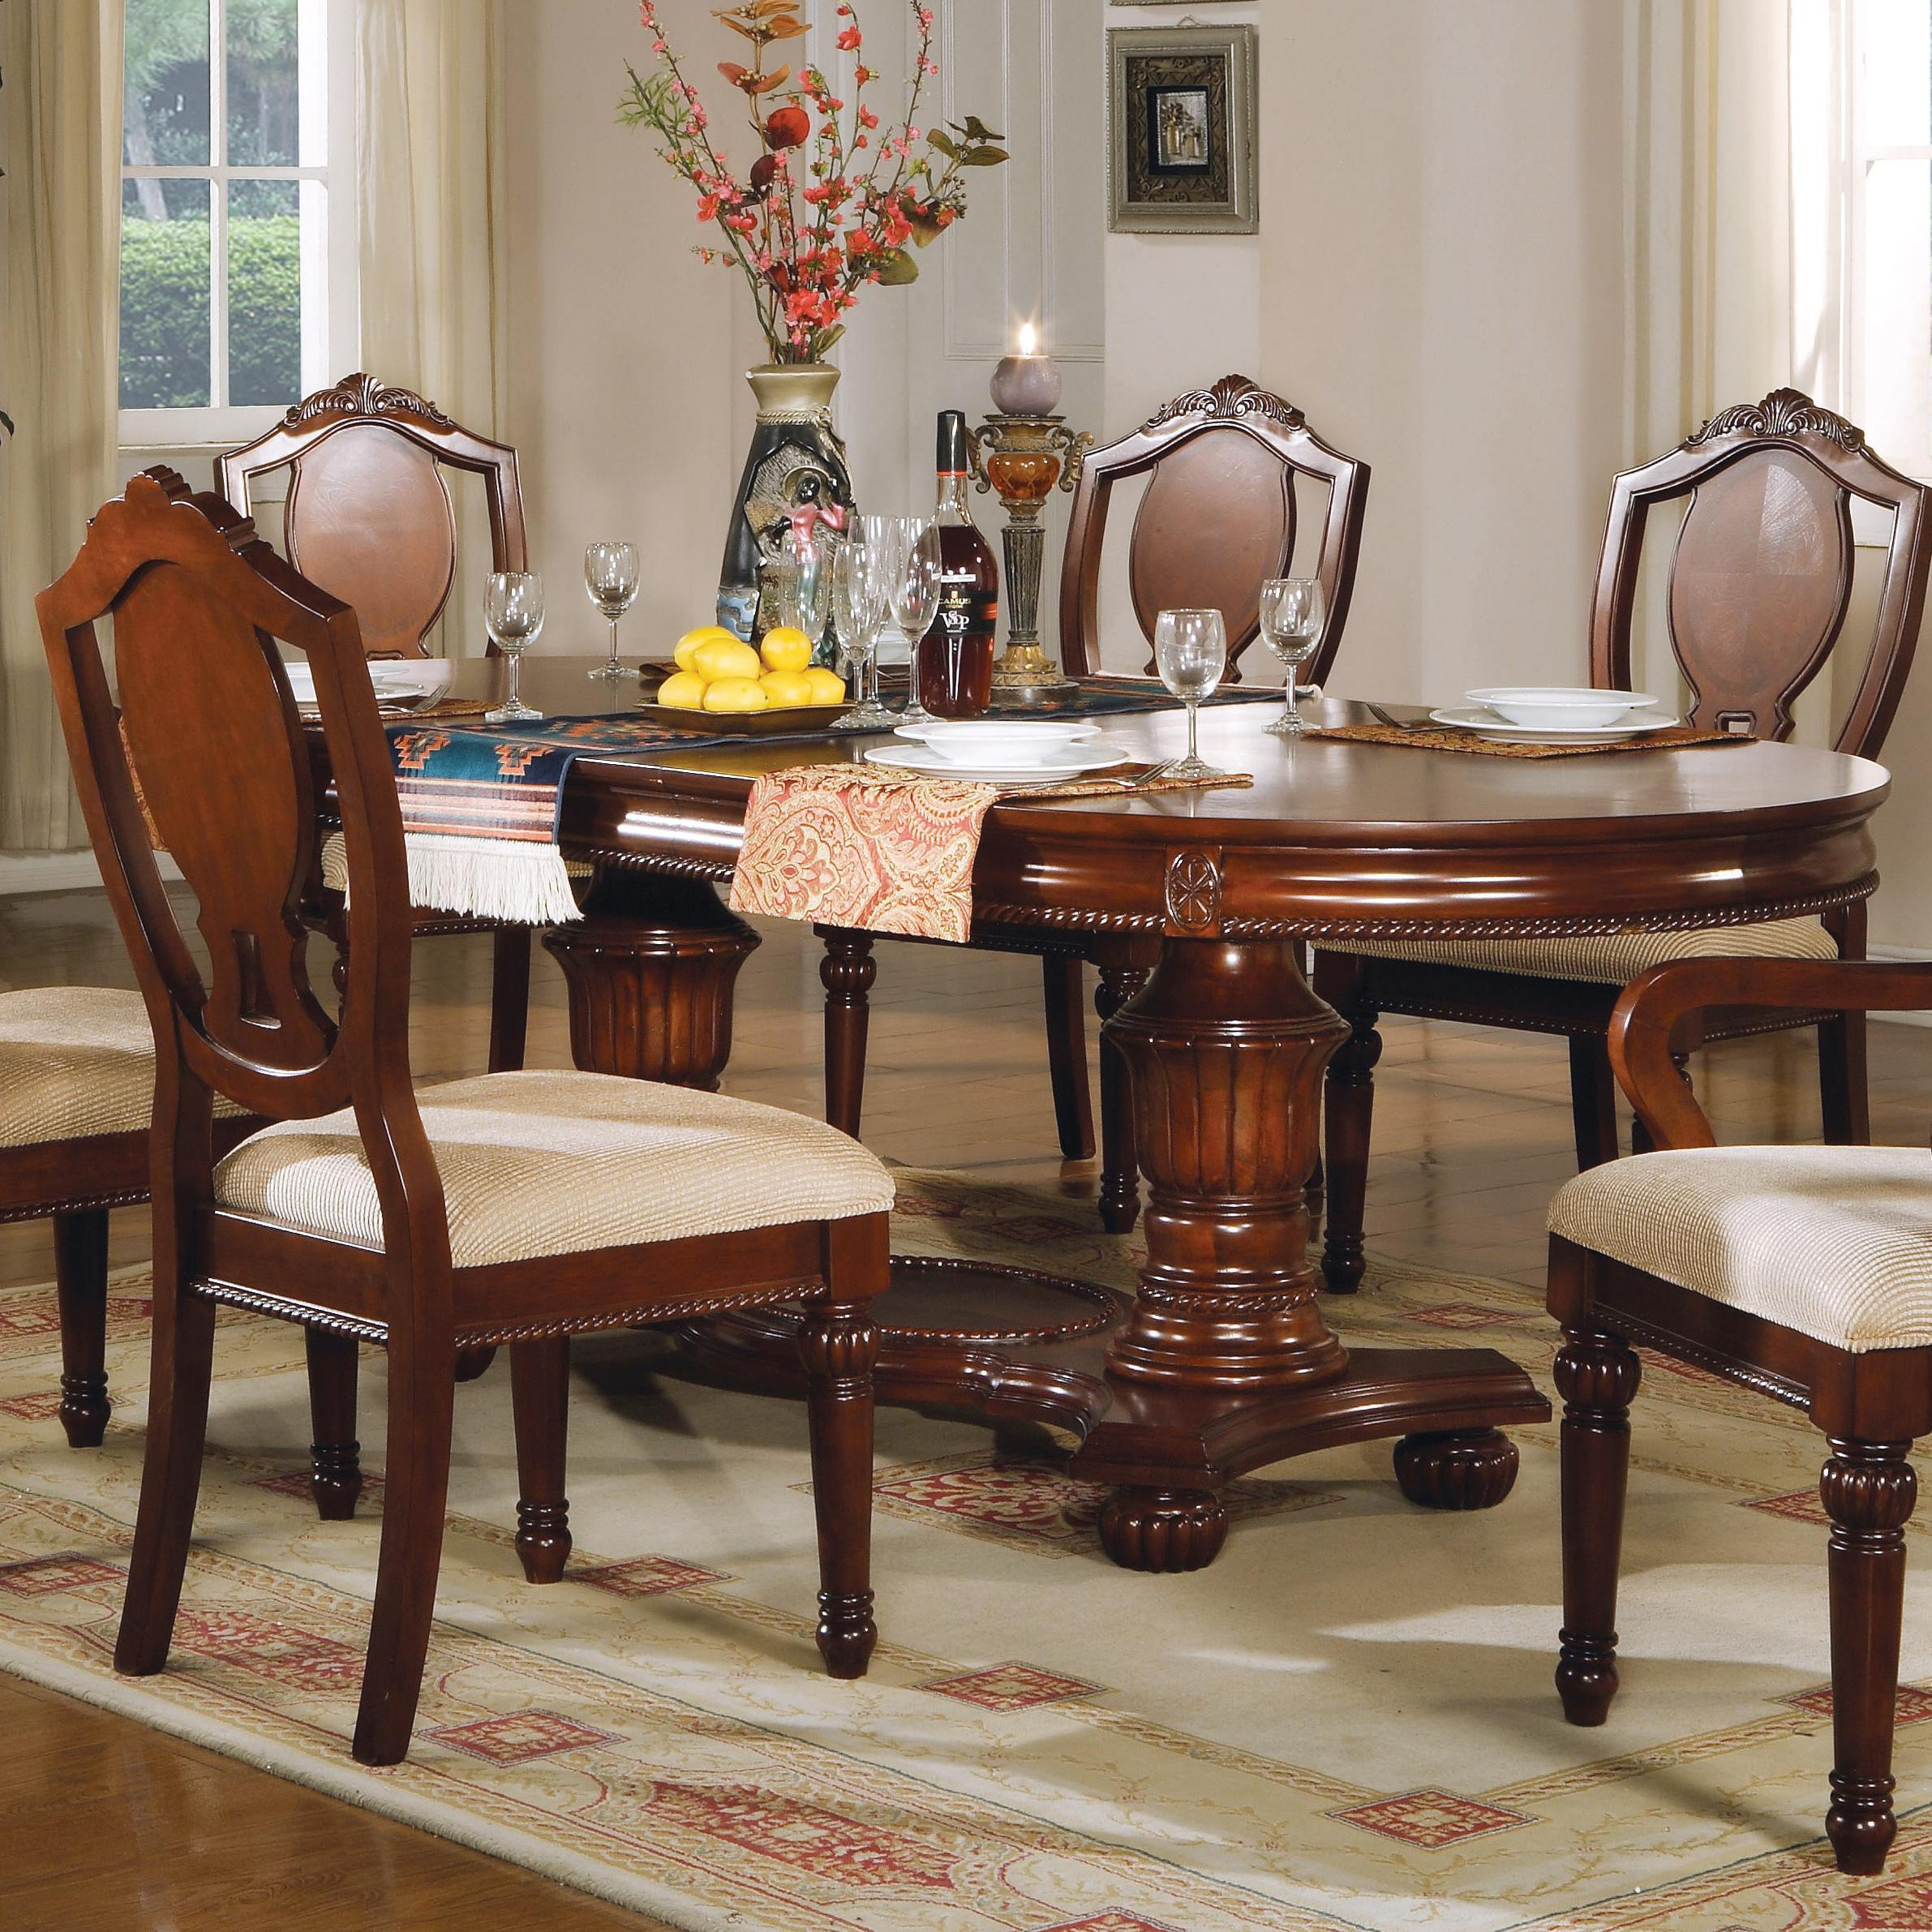 Acme Furniture 11800 Double Pedestal Table - Item Number: 11830